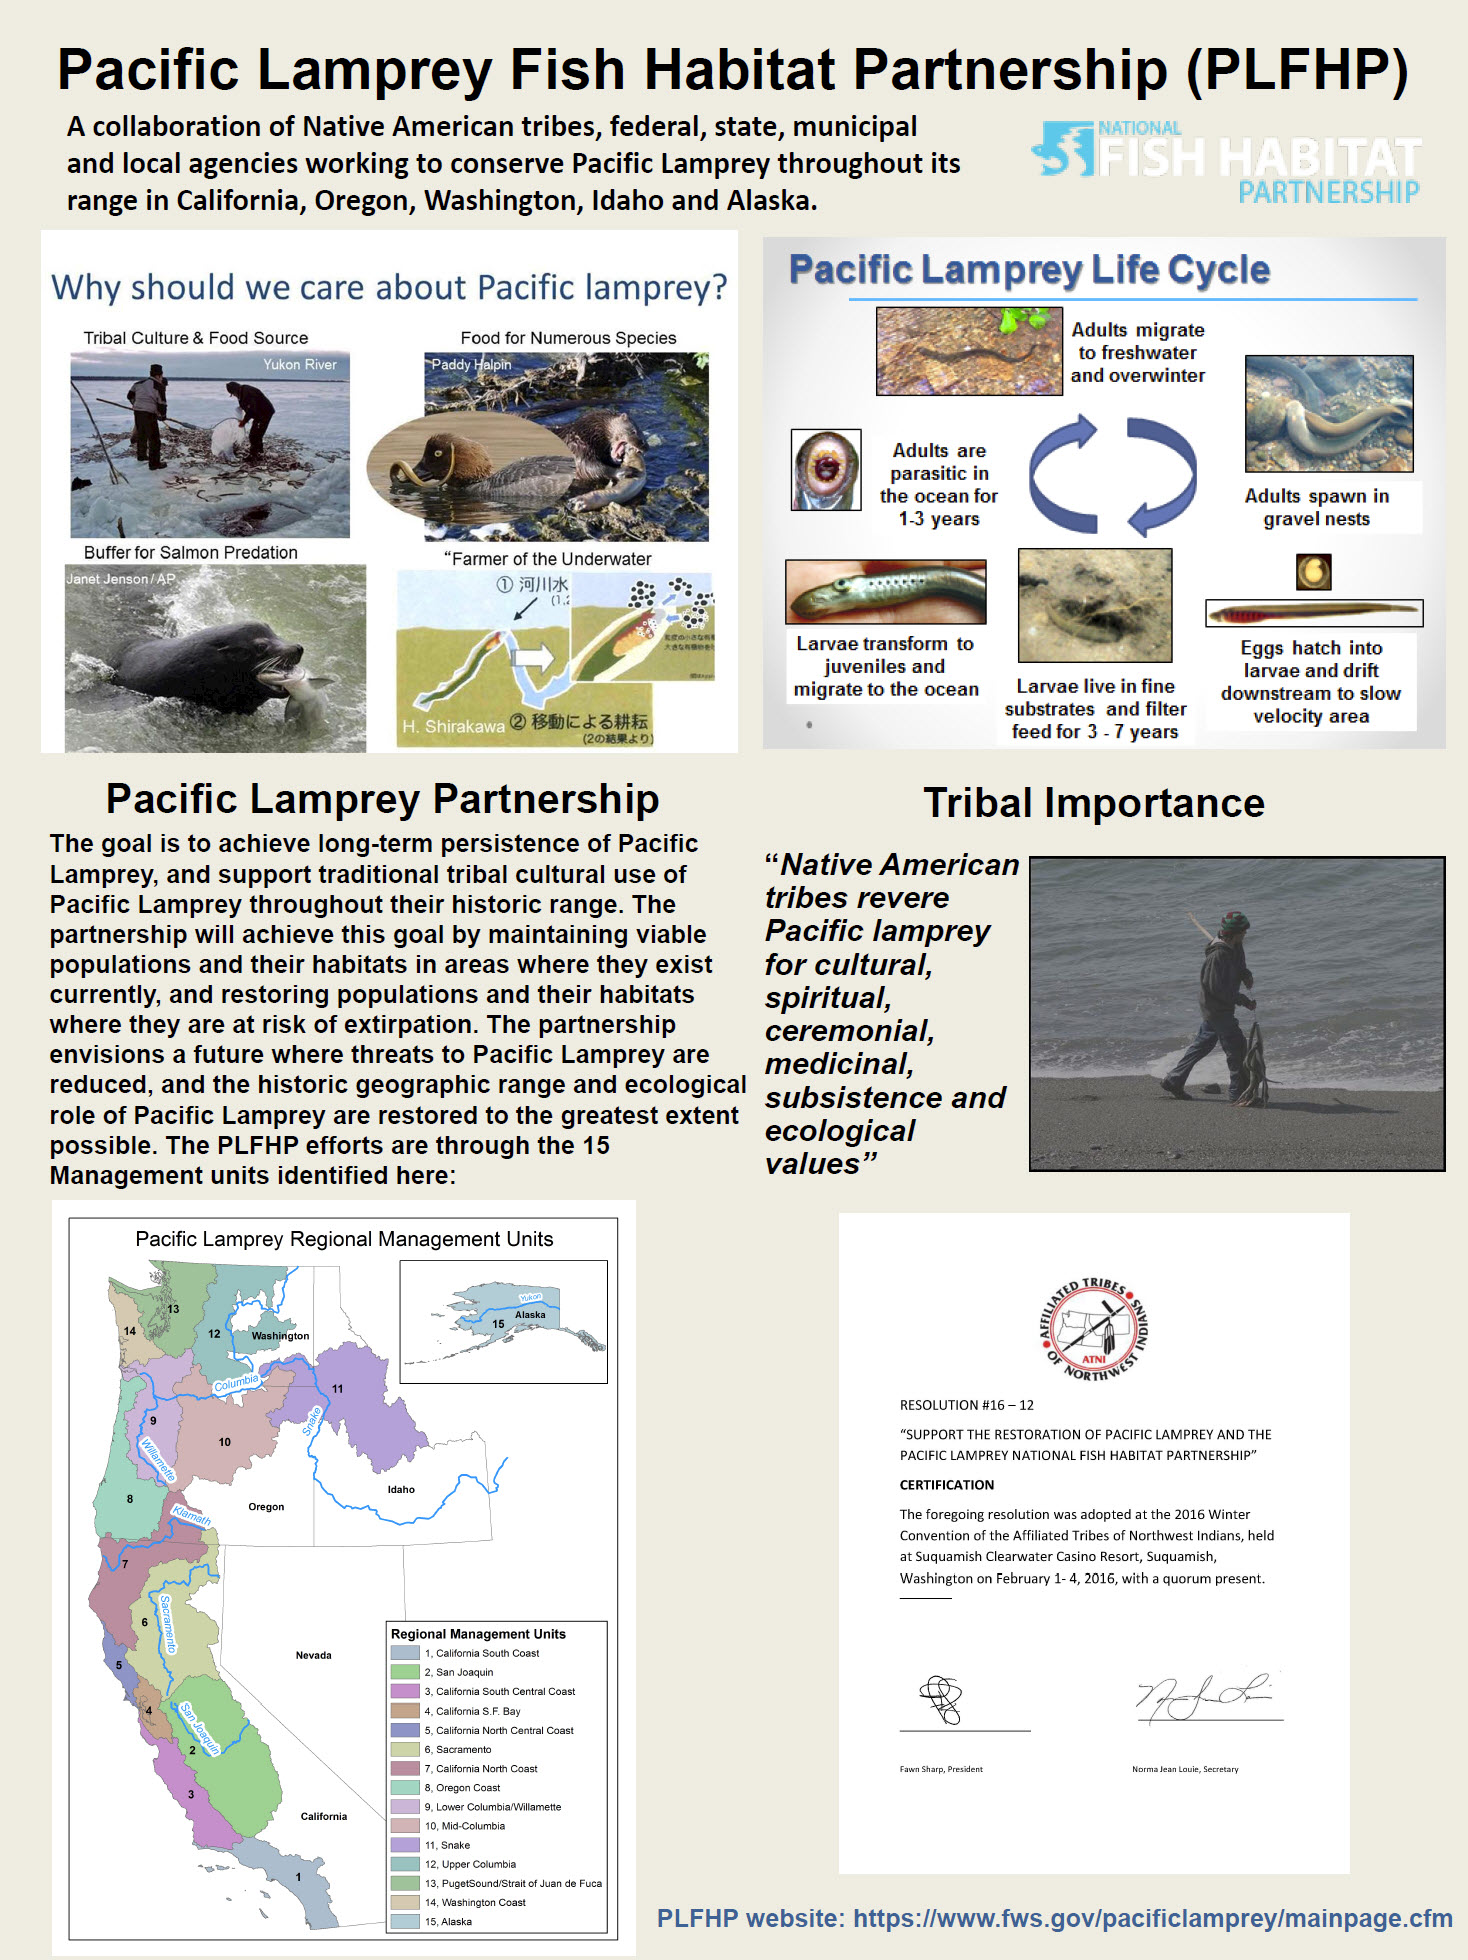 Pacific Lamprey Fish Habitat Partnership (1 of 2)